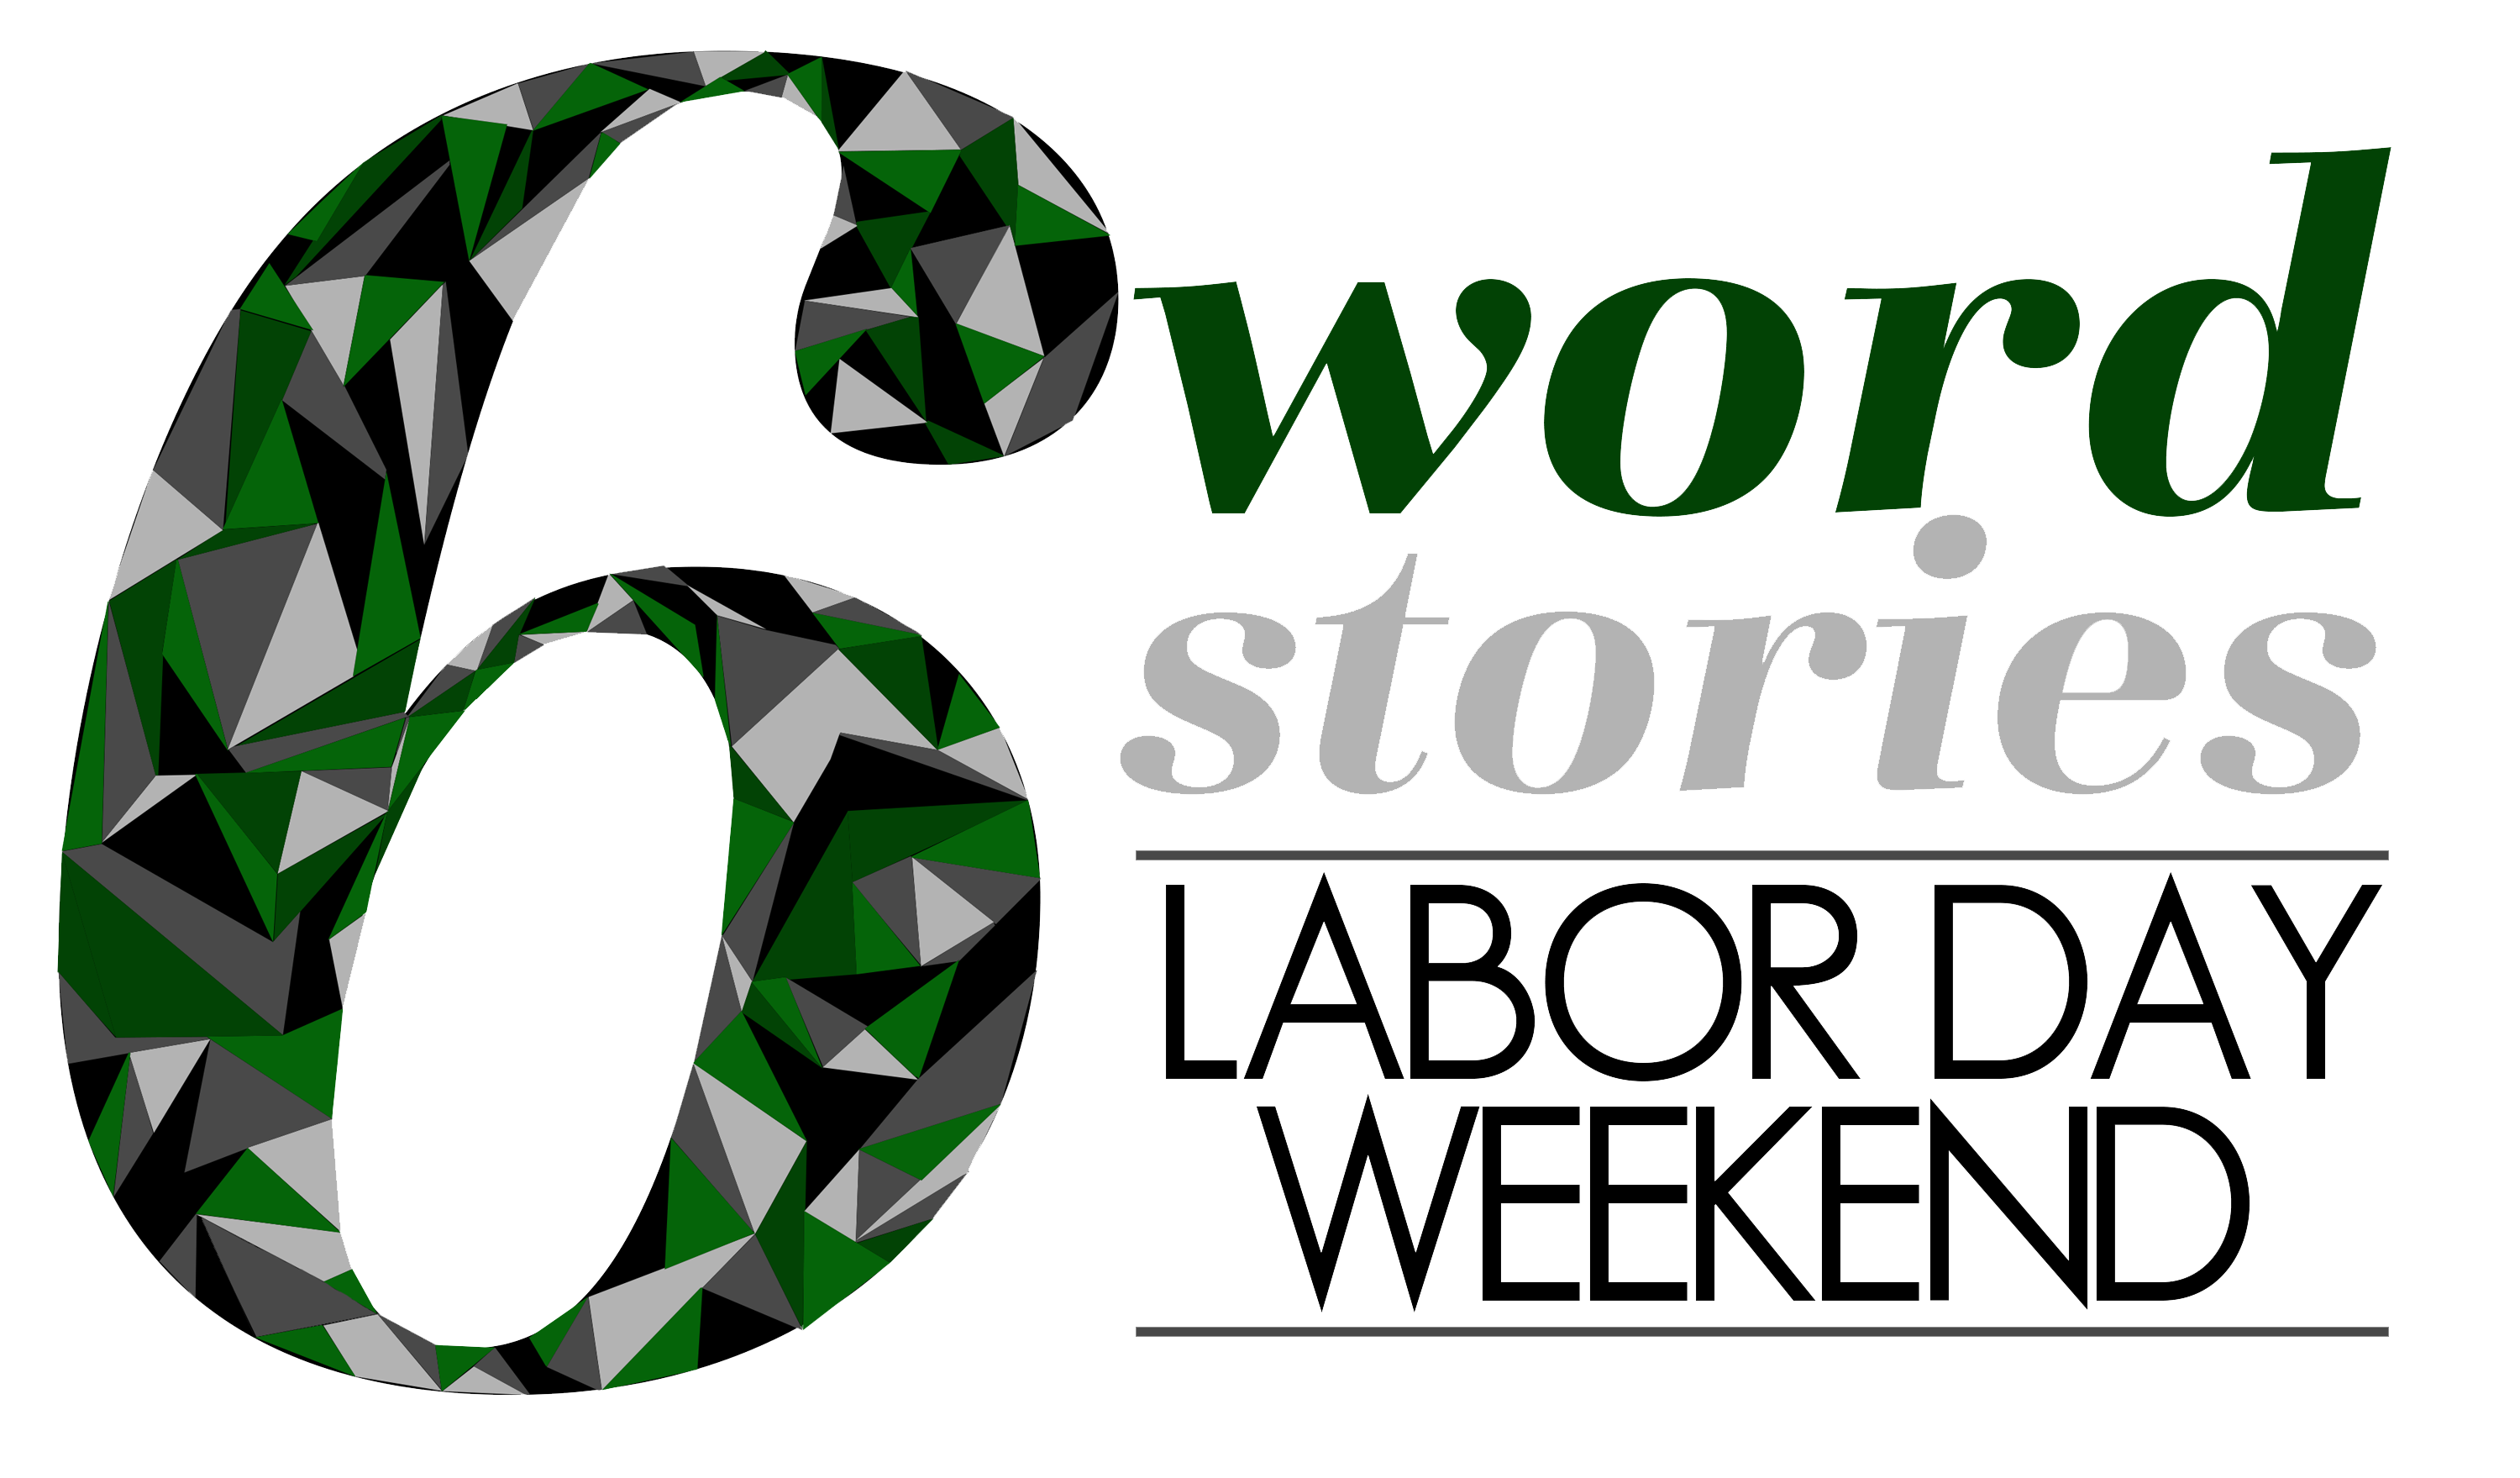 Six Word Stories – Labor Day Weekend